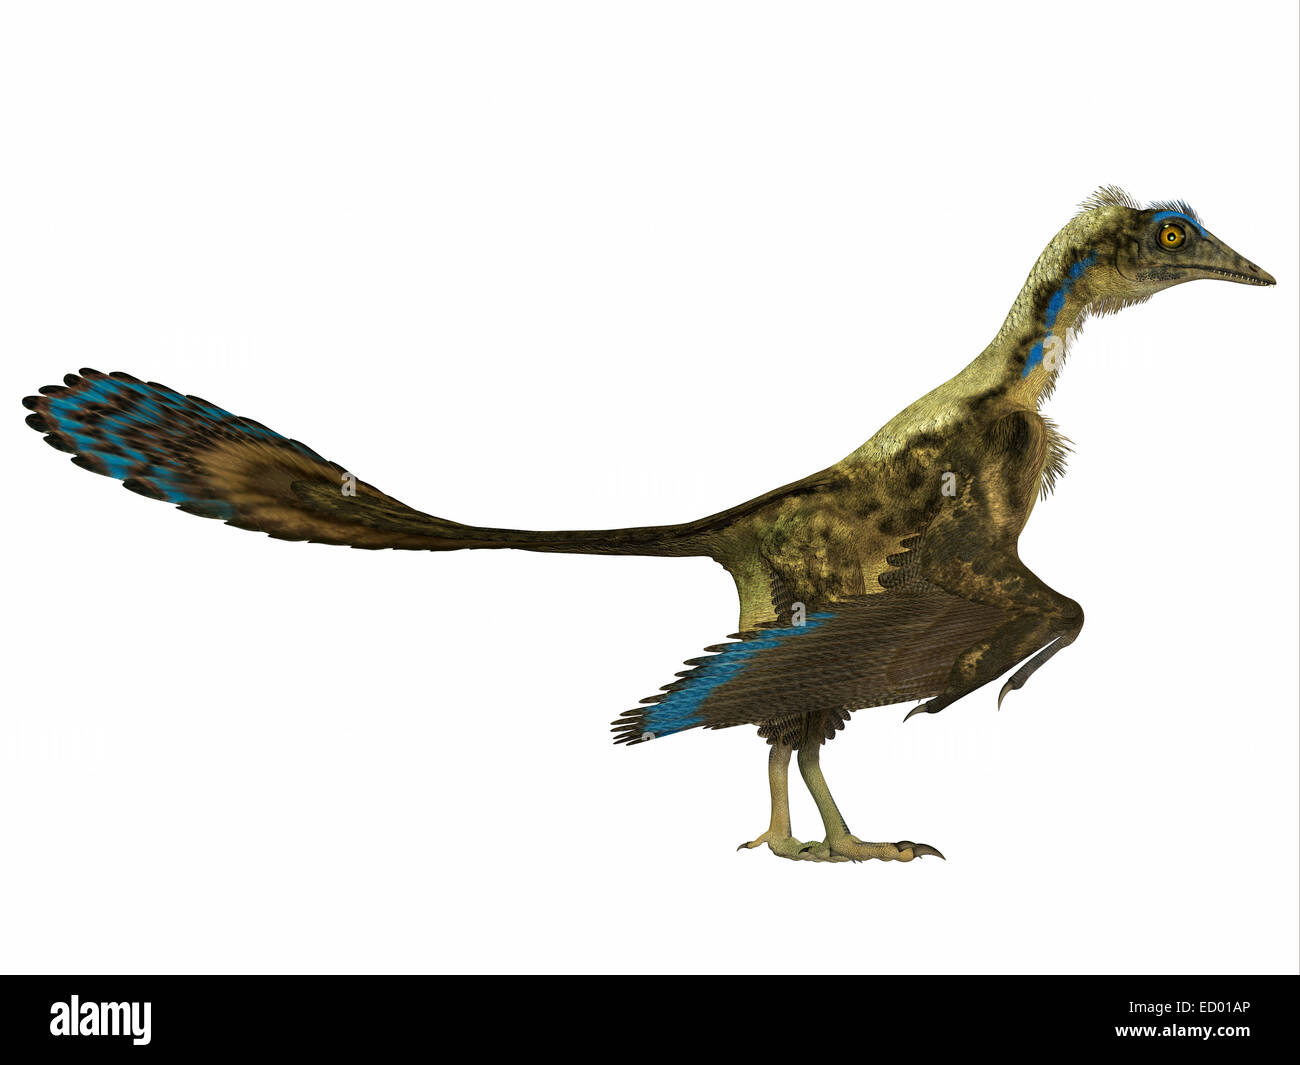 Archaeopteryx is the most primitive known bird and lived in the Jurassic Age of Germany. - Stock Image